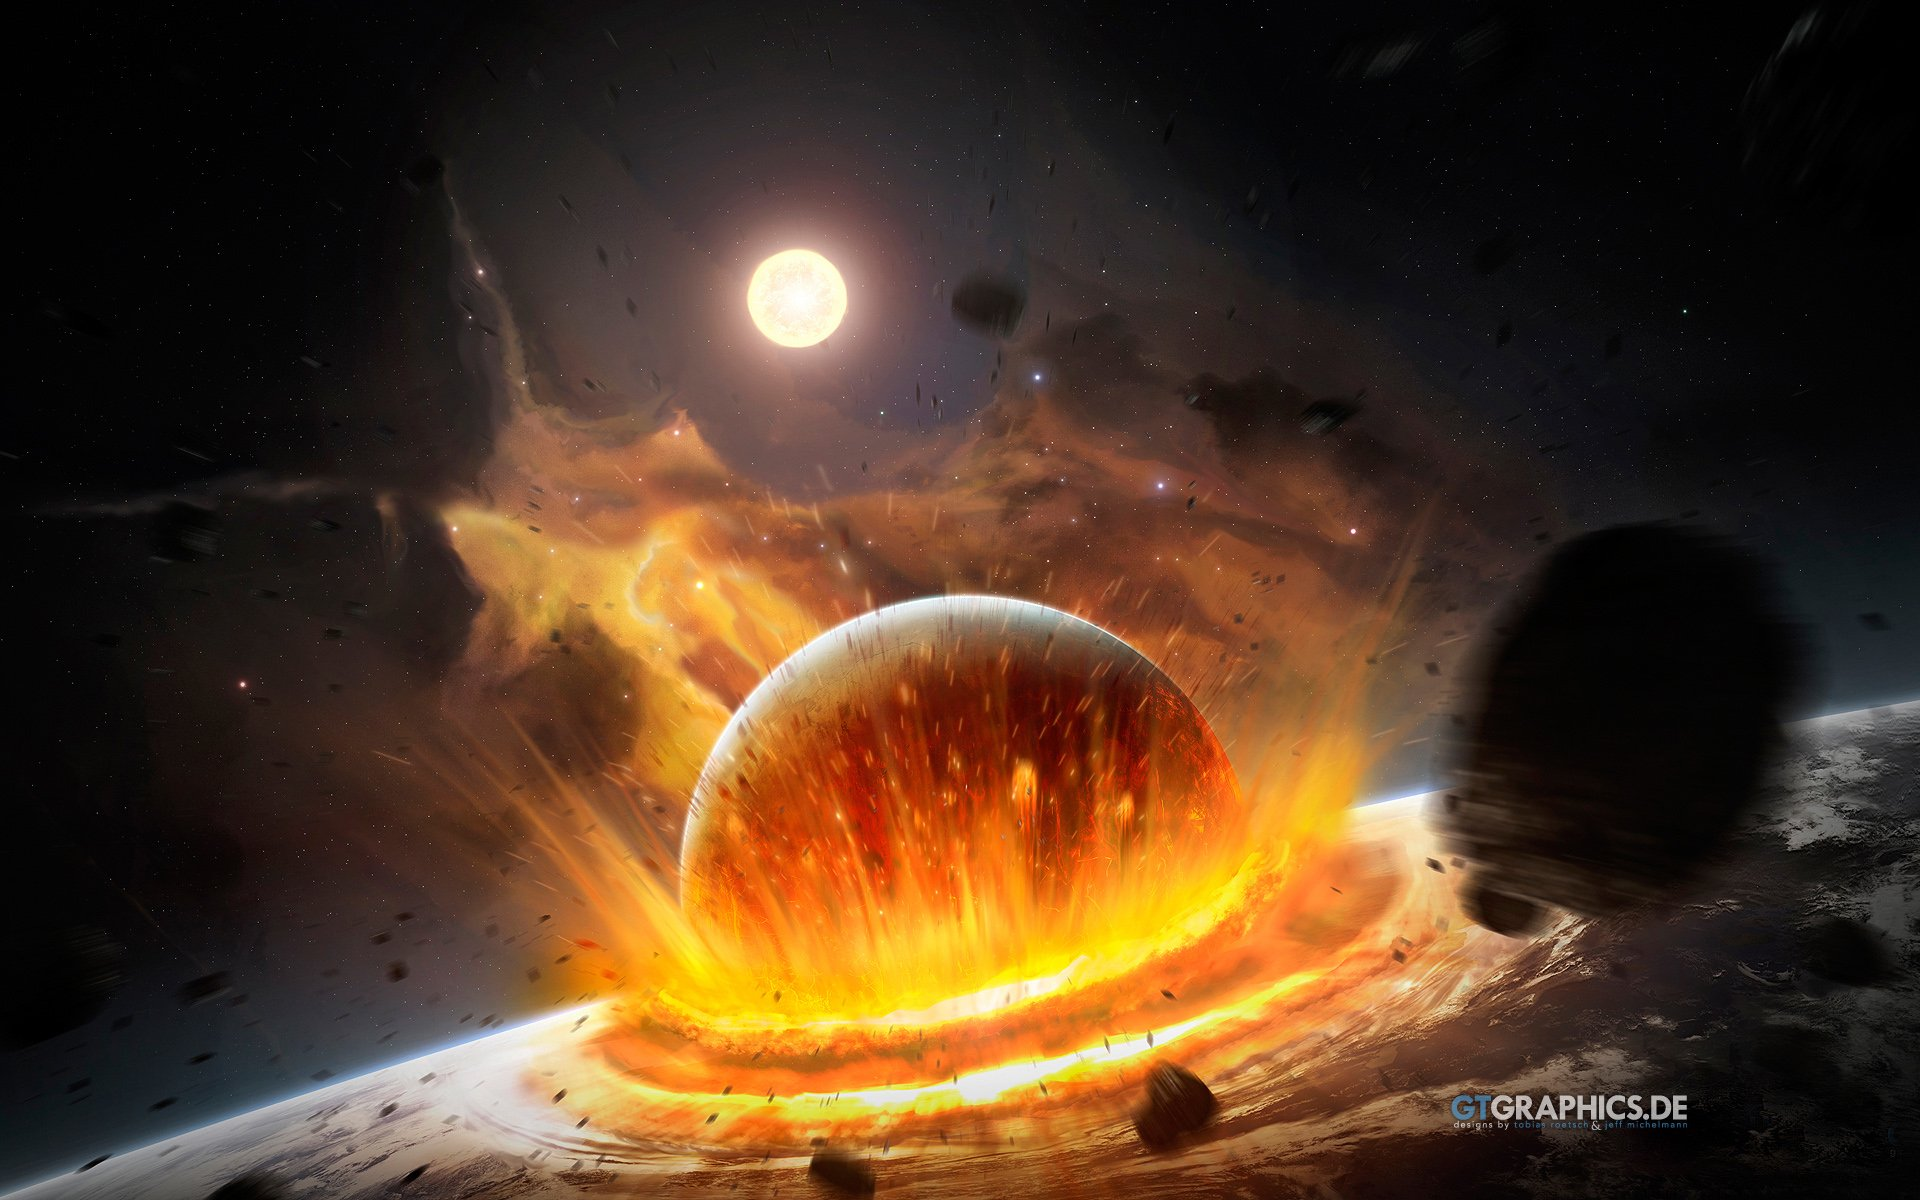 Sci Fi - Collision  Sci Fi Explosion Planet Moon Asteroid Wallpaper